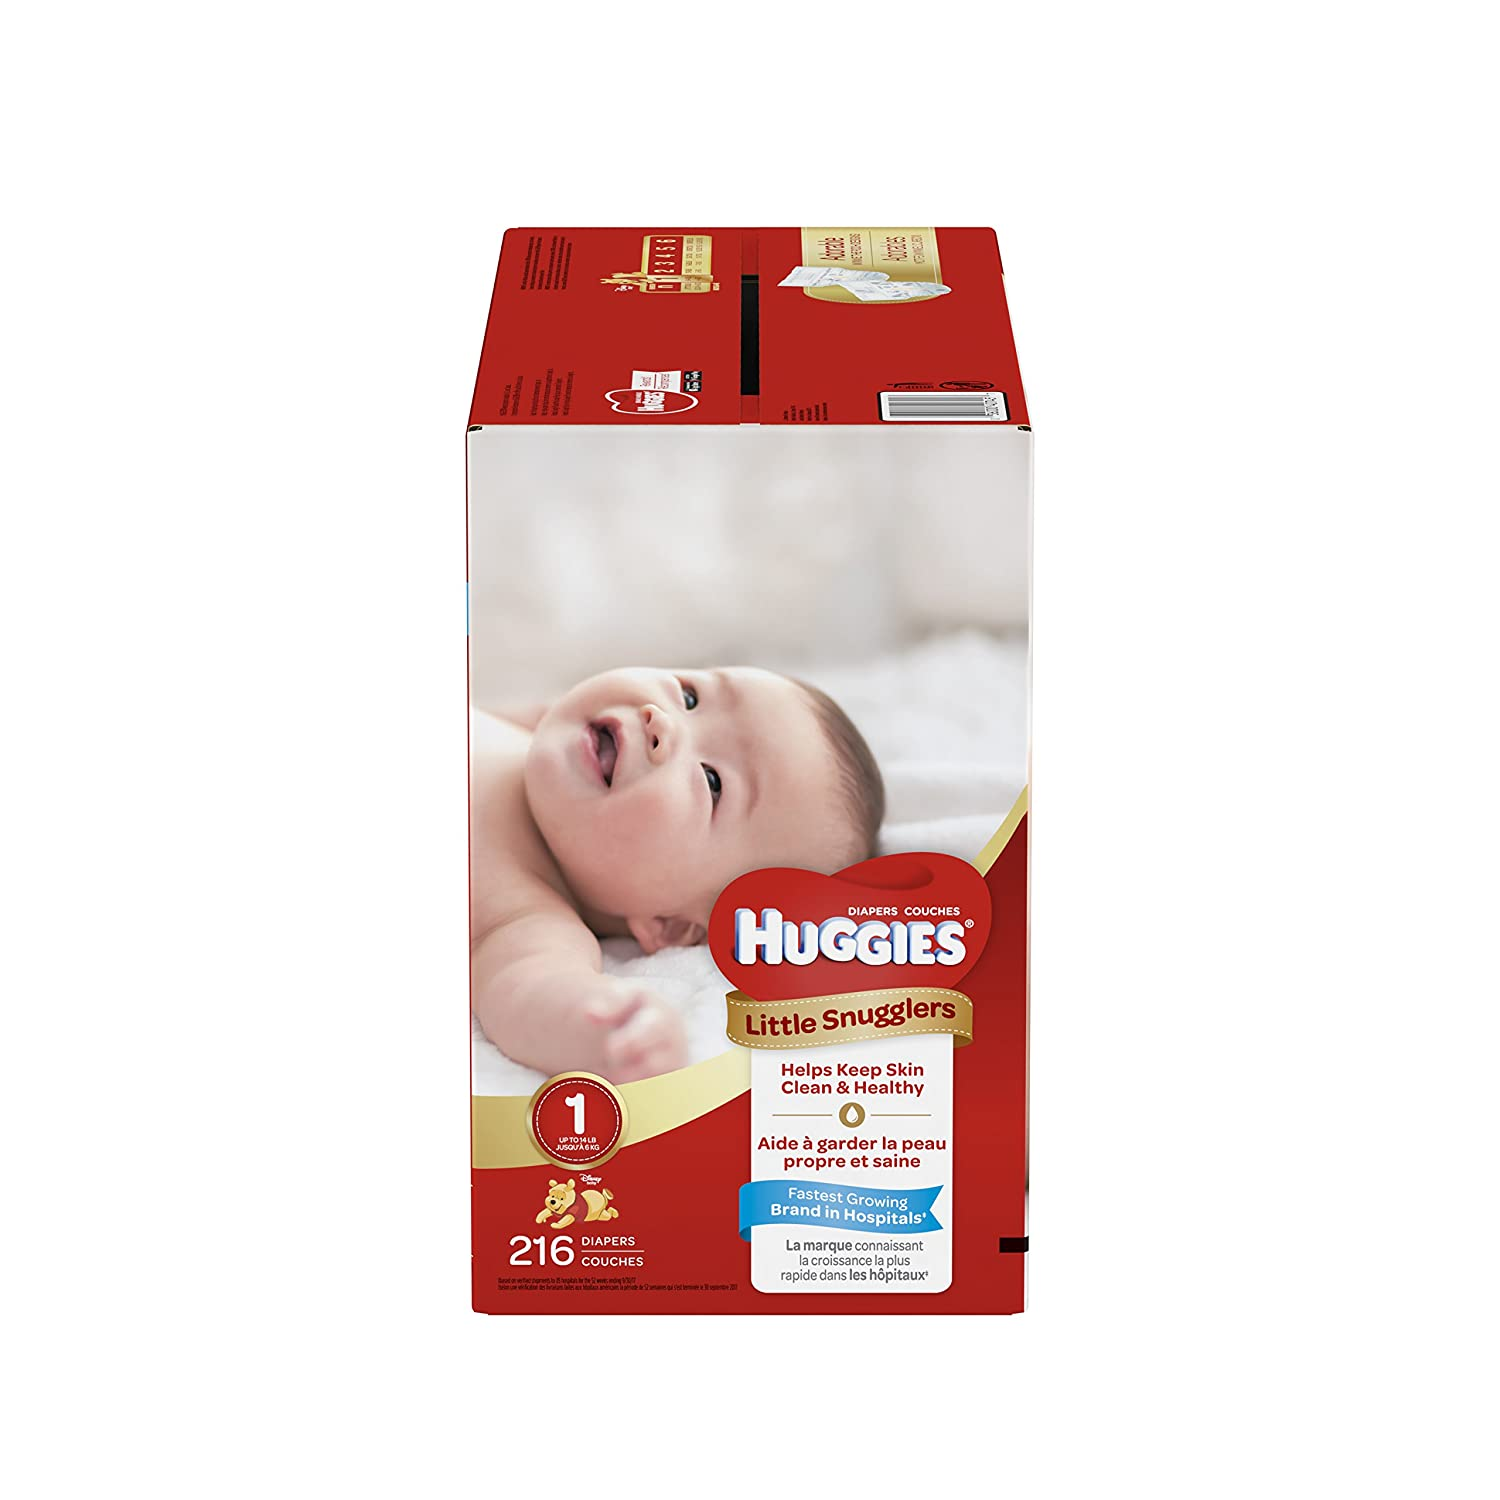 Huggies Little Snugglers Baby Diapers, Size 1, For 8 14 Lbs, One Month Supply (216 Count), Packaging May Vary by Huggies